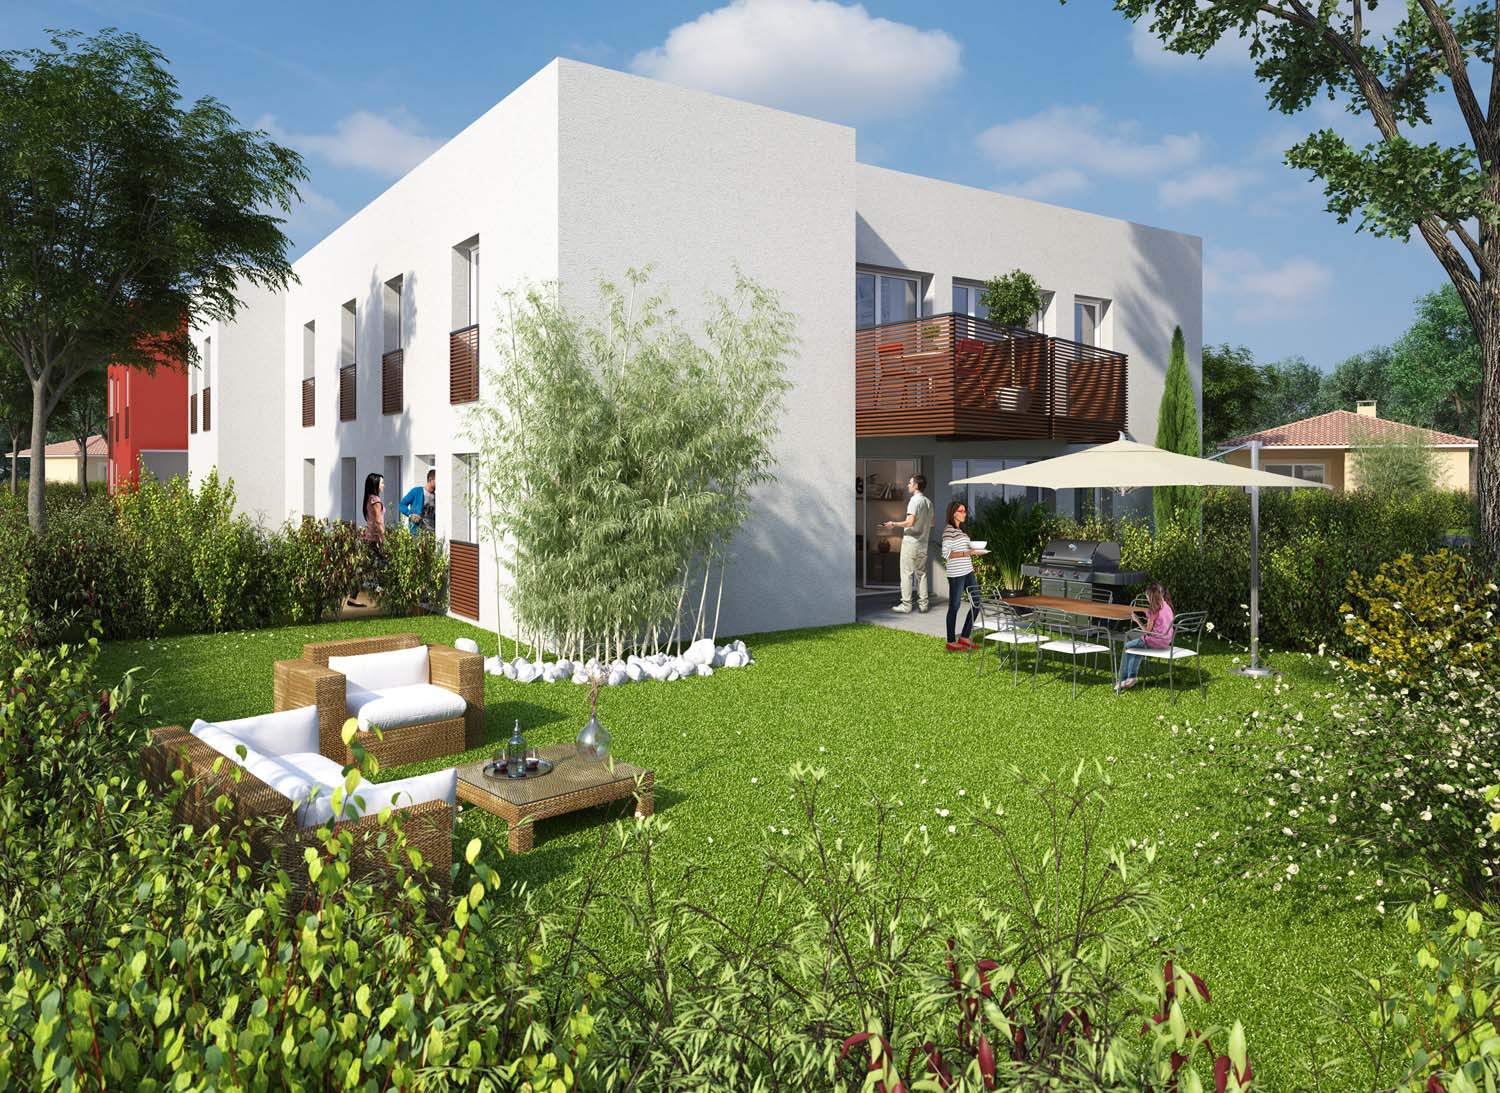 Le jardin des sens programme immobilier loi pinel neuf for Immobilier neuf gironde